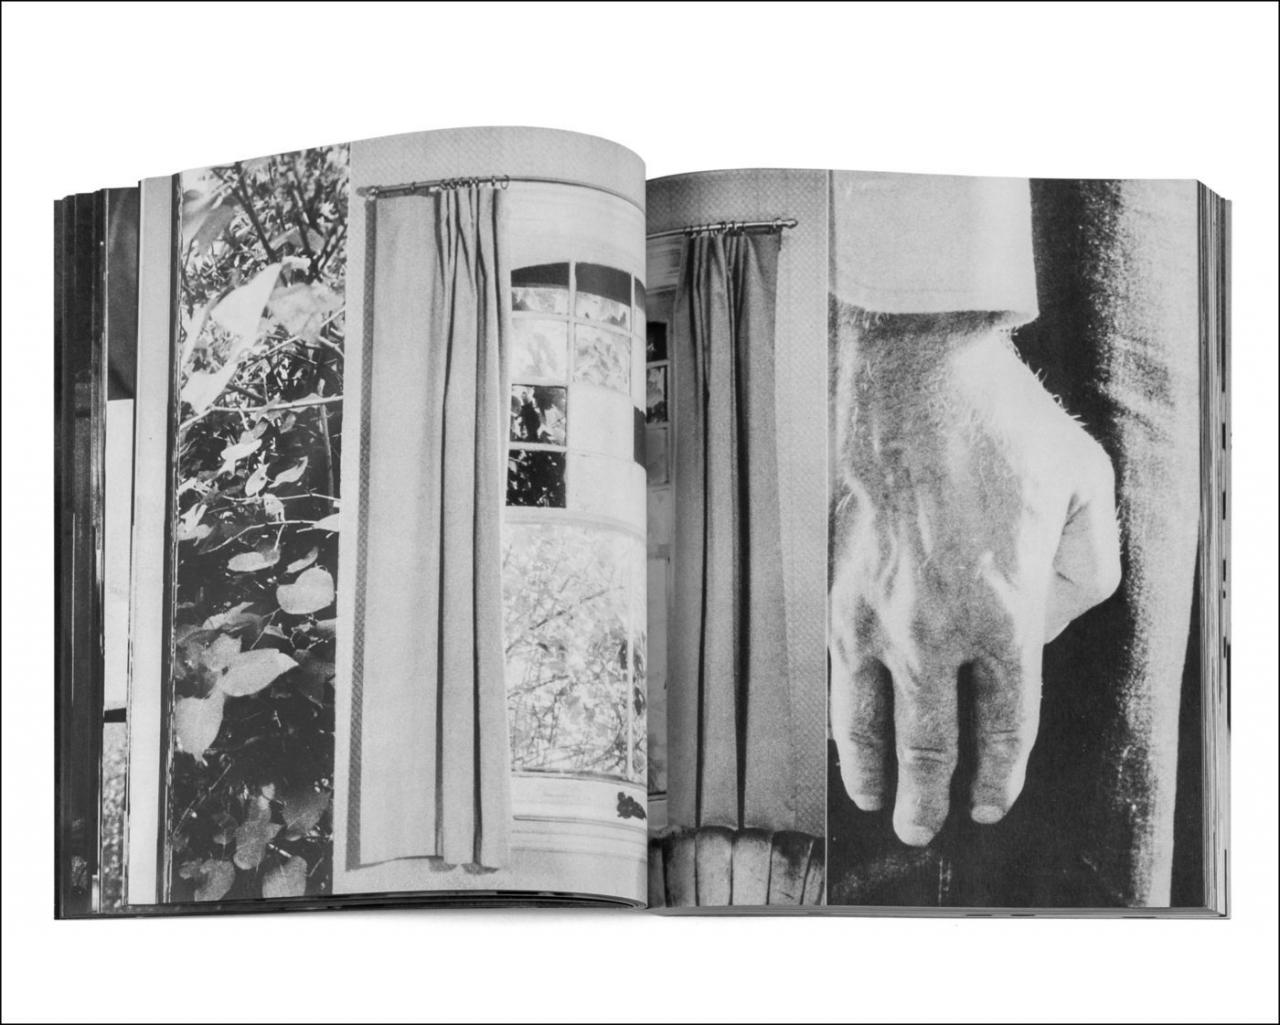 Spread from Cover to Cover by Michael Snow, Press of the Nova Scotia College of Art and Design (1975).